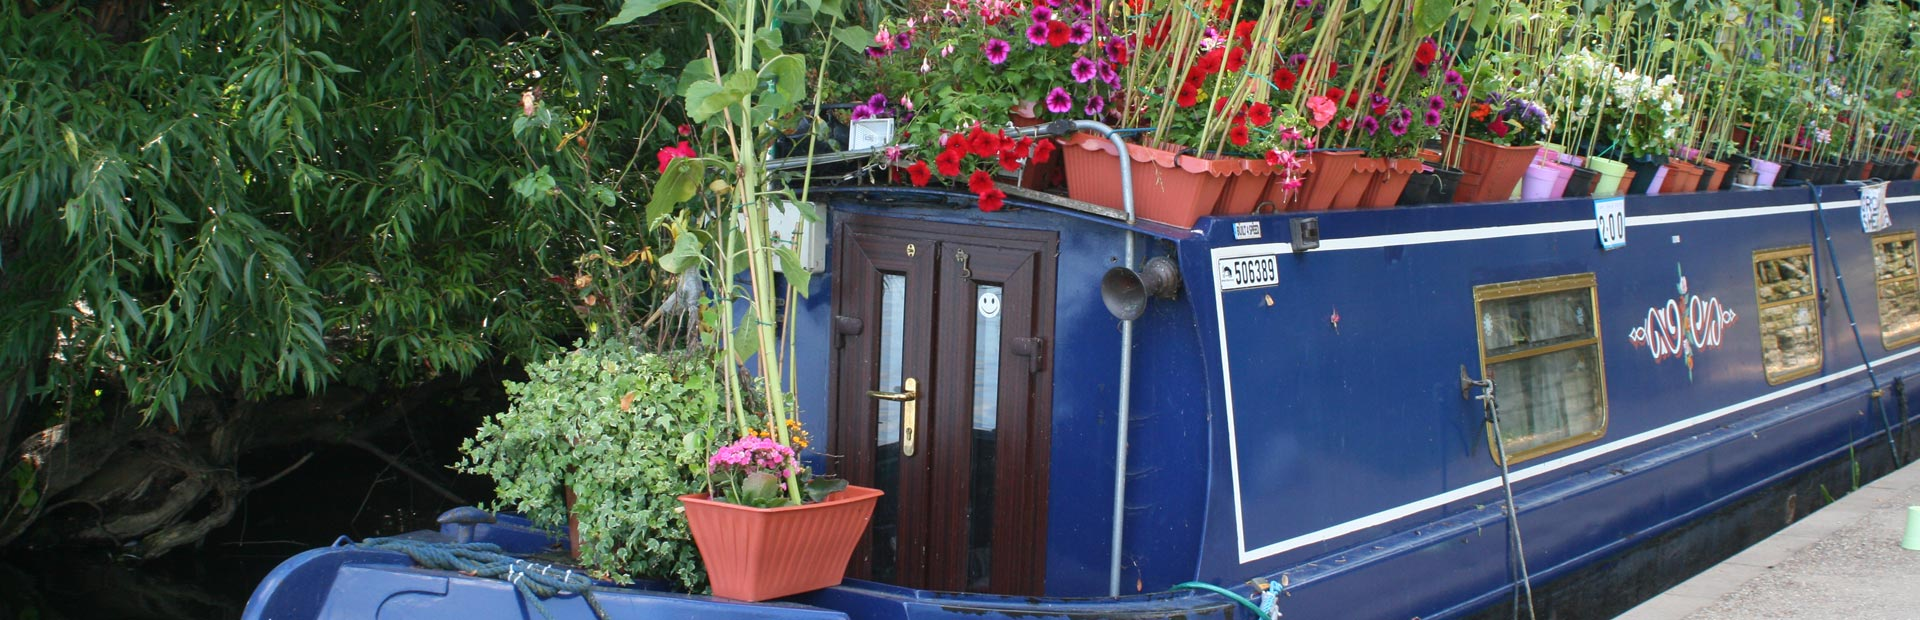 Blue house boat with flowers in Windsor